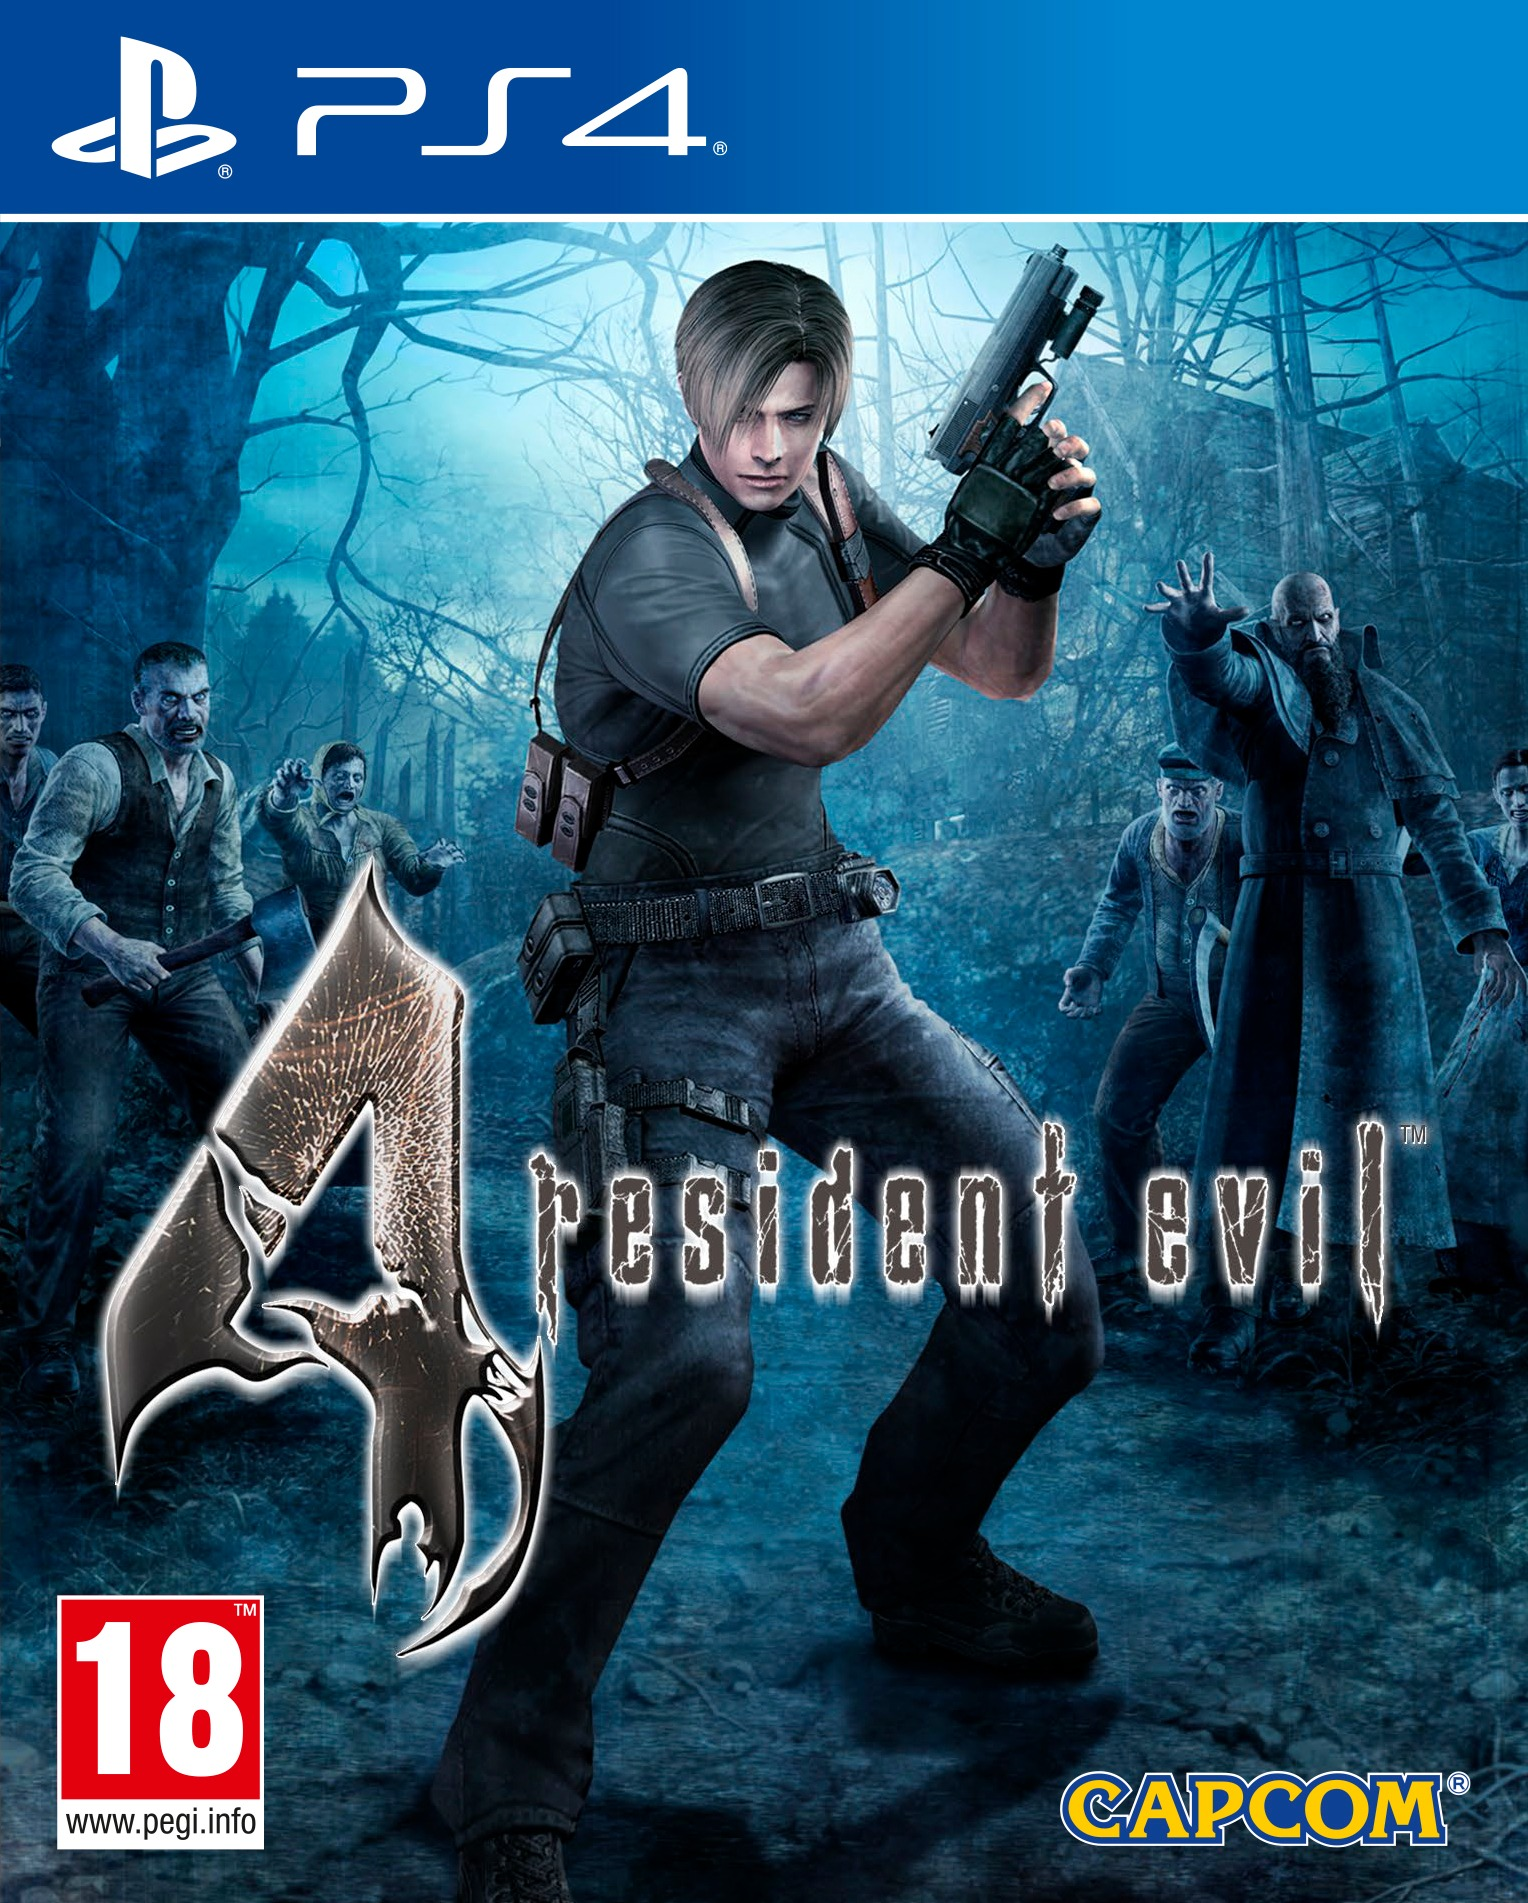 Resident Evil 4 HD [PS4] 5.05 / 6.72 / 7.02 [USA] (2016) [Русский] (v1.00)